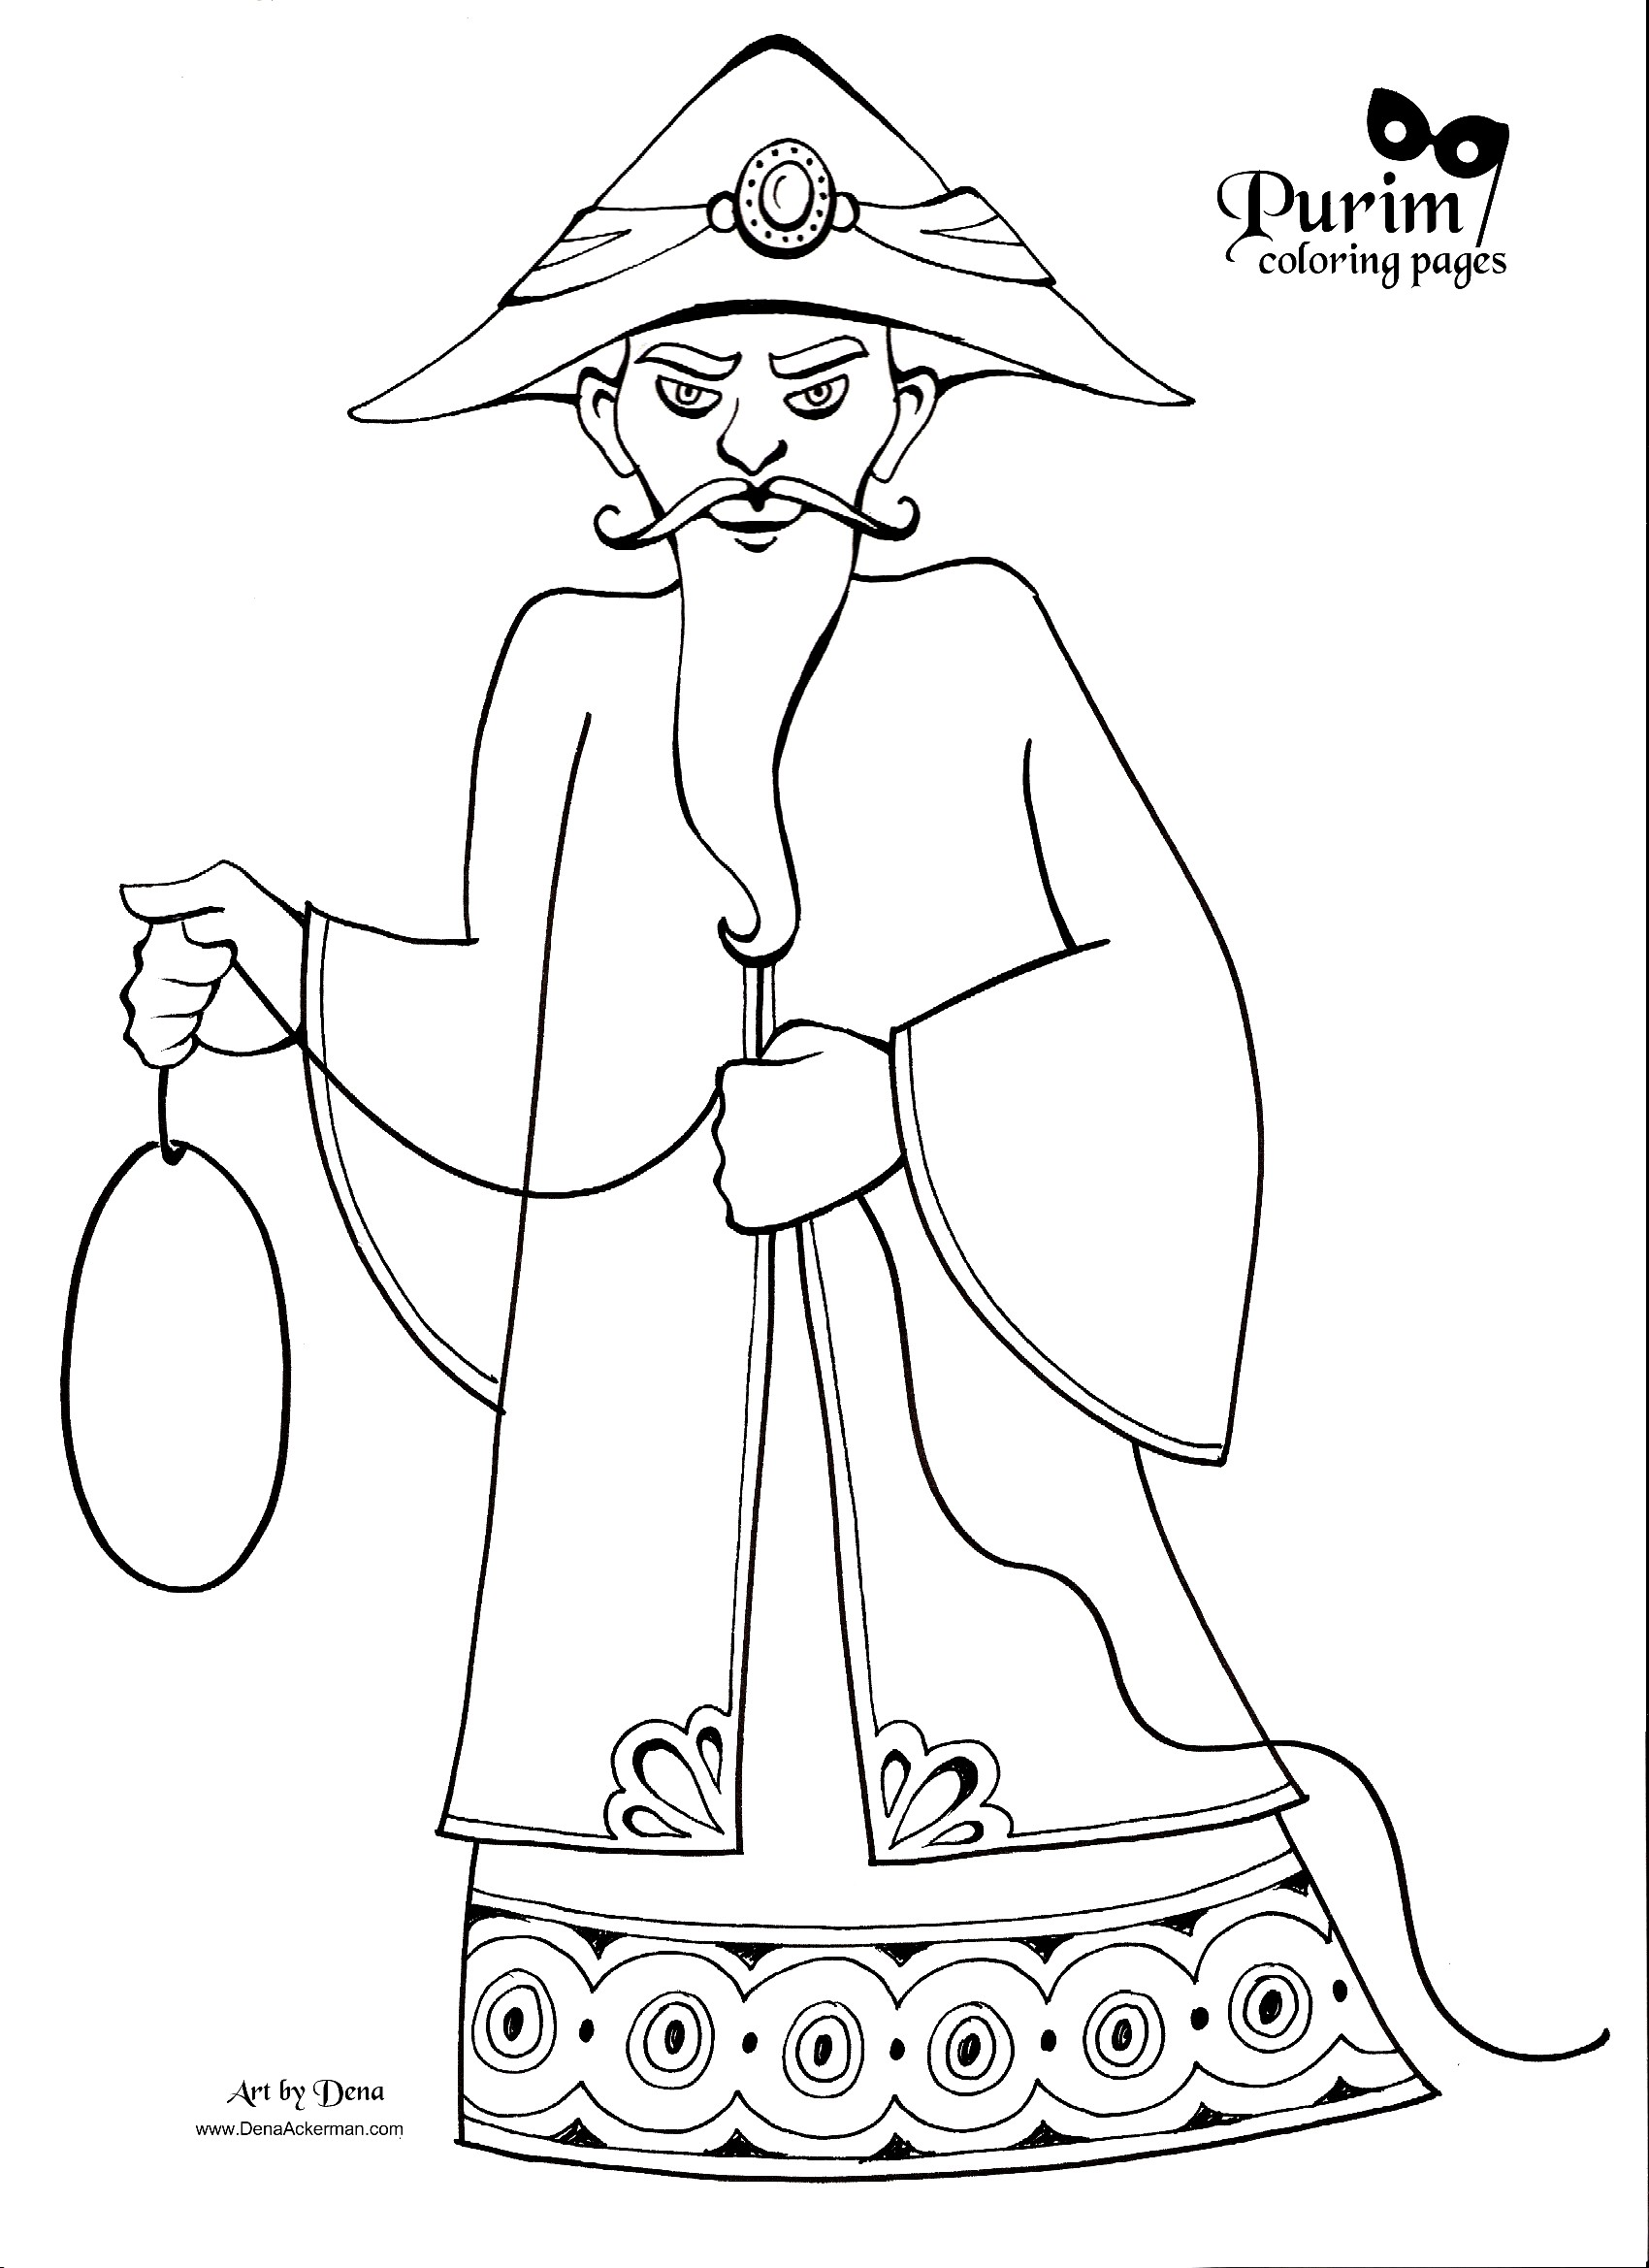 purim coloring pages for preschoolers - photo#5